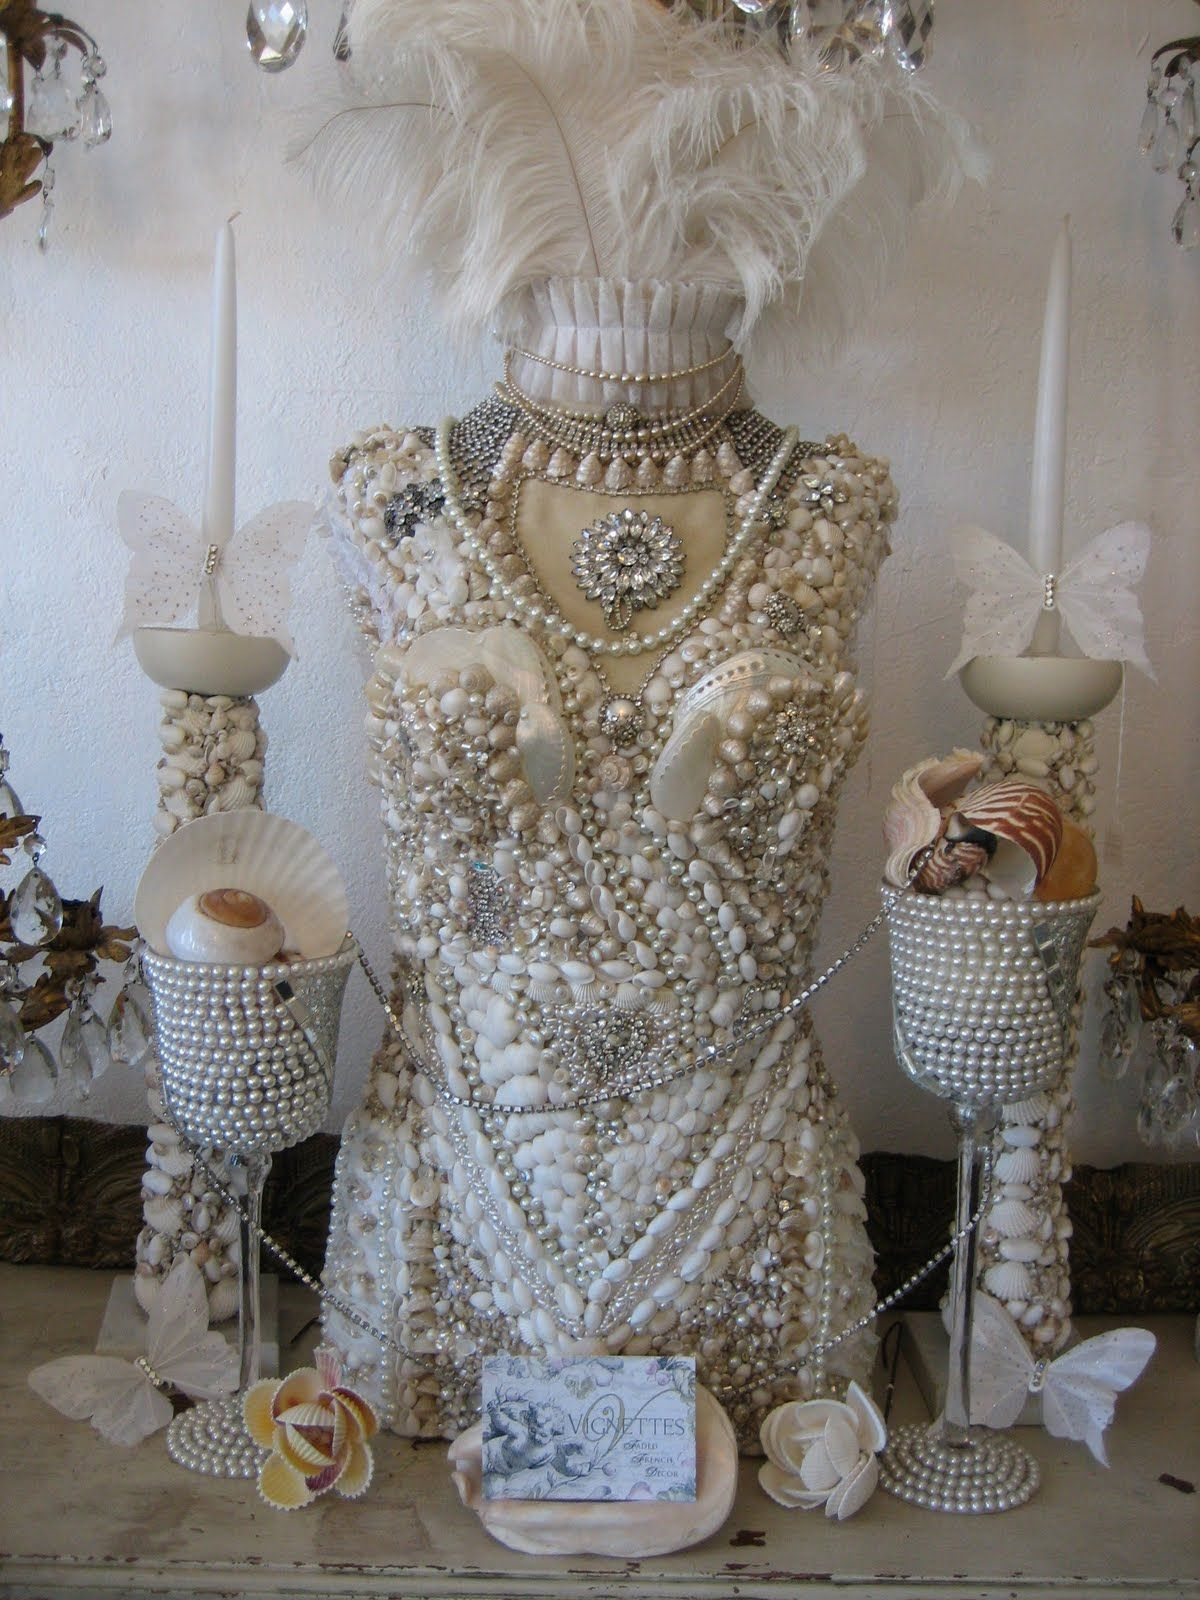 Vignettes Antiques Seashell decoration in high fashion